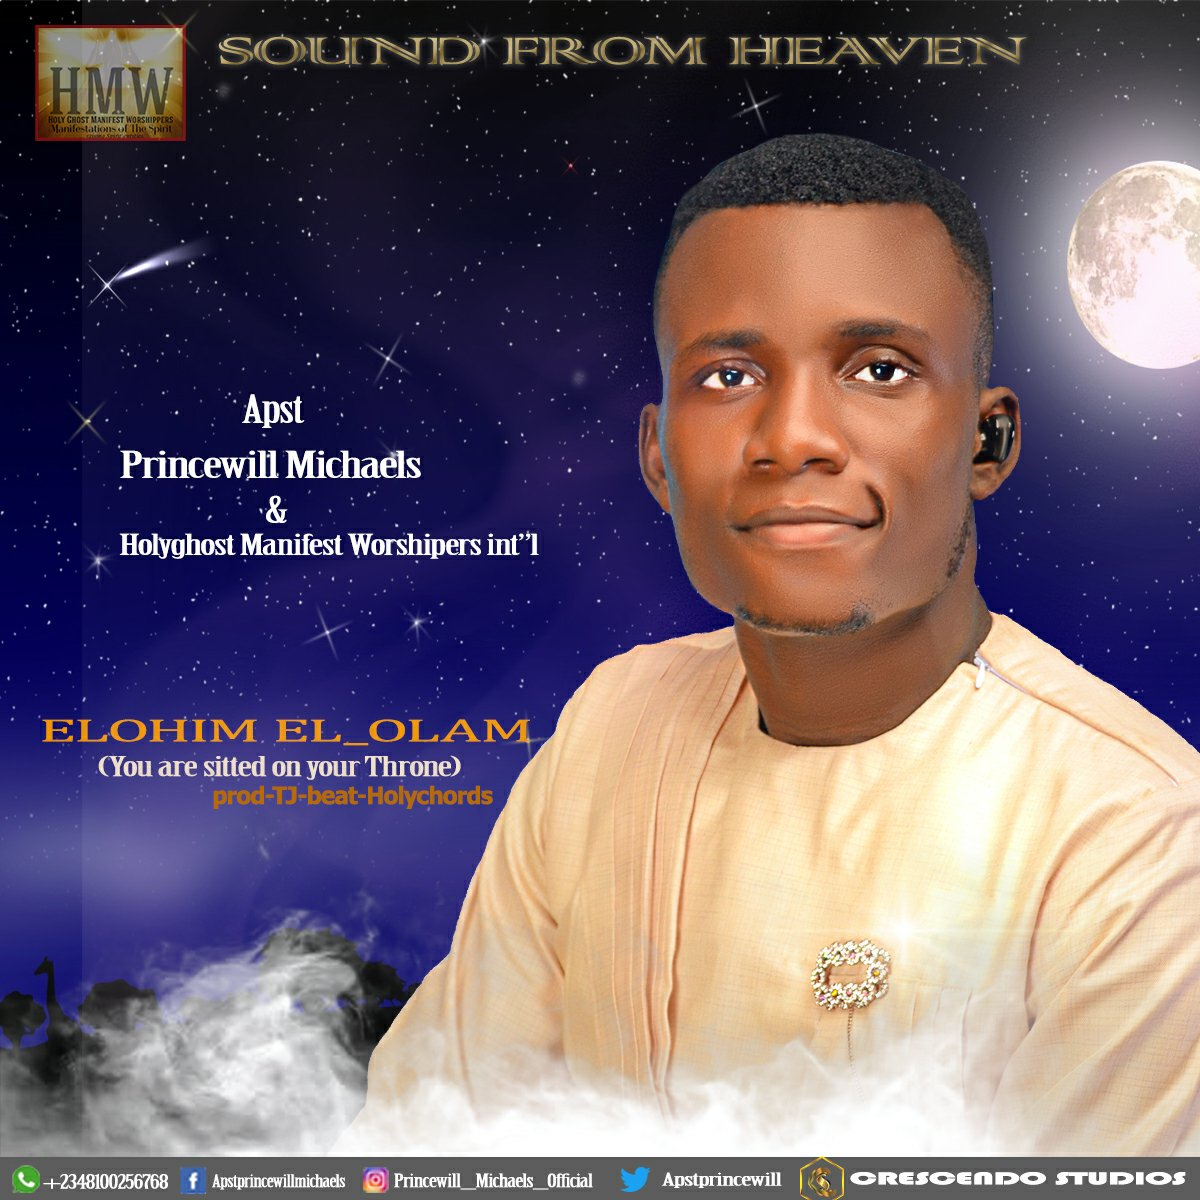 DOWNLOAD Music: Apst Princewill Michaels Elohim_el-olam  (You Are Sitted On Your Throne)